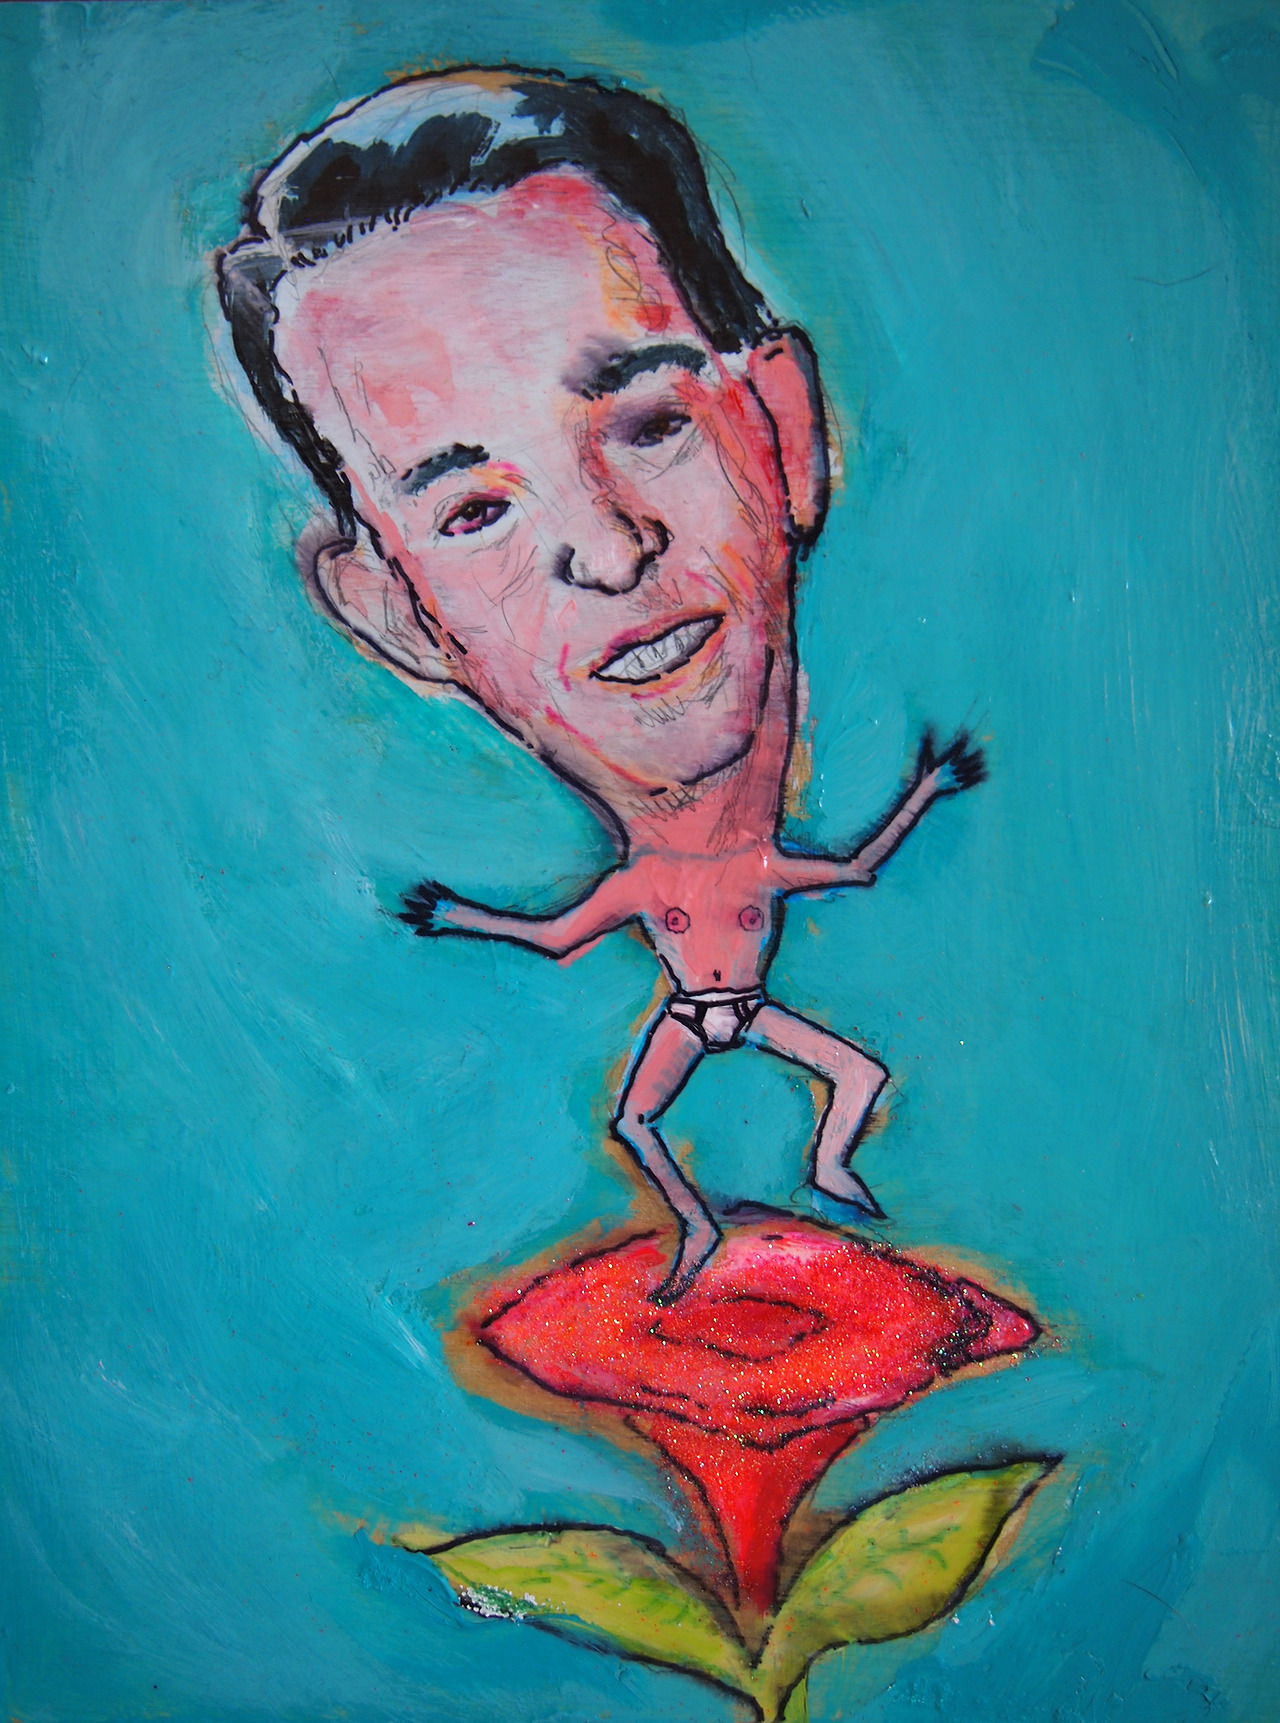 8/16/13 -  Walker All Over You .   I don't think I got his beady little eyes quite right, but here, Wisconsin. Have a pic of Scott Walker dancing on a, um, flower.   Also, if you're in Madison come to Macha Teahouse tonight between 6-9. Almost all of my daily art pieces will be up there. Oh, and I'll be there, too.